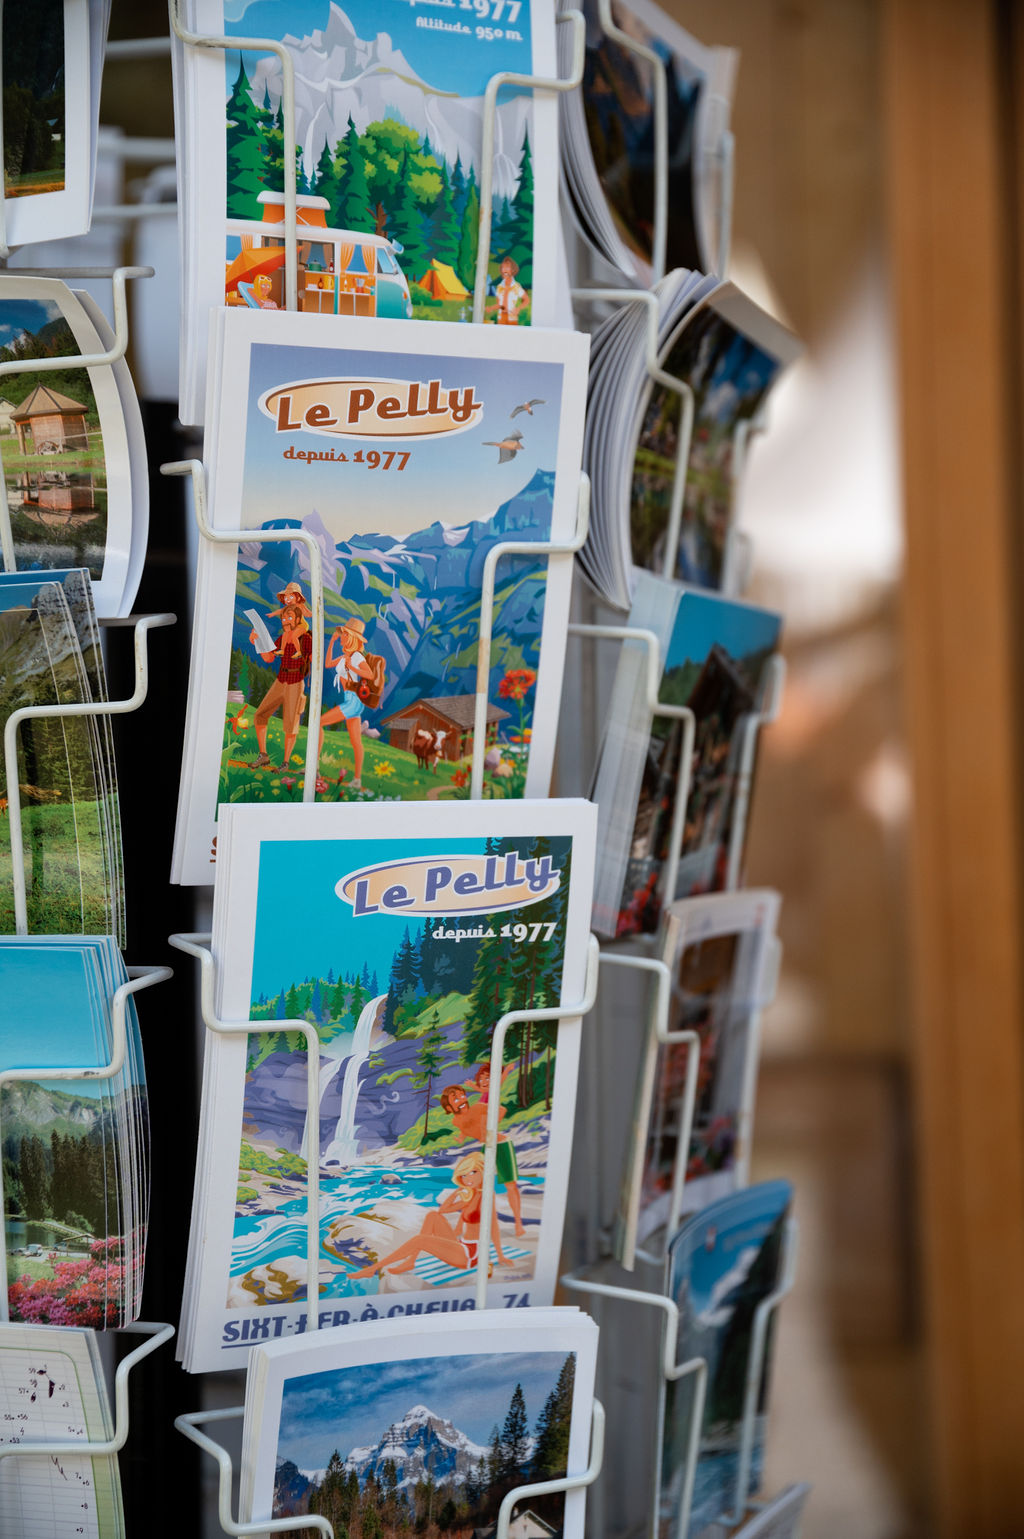 camping-le-pelly-contact-5